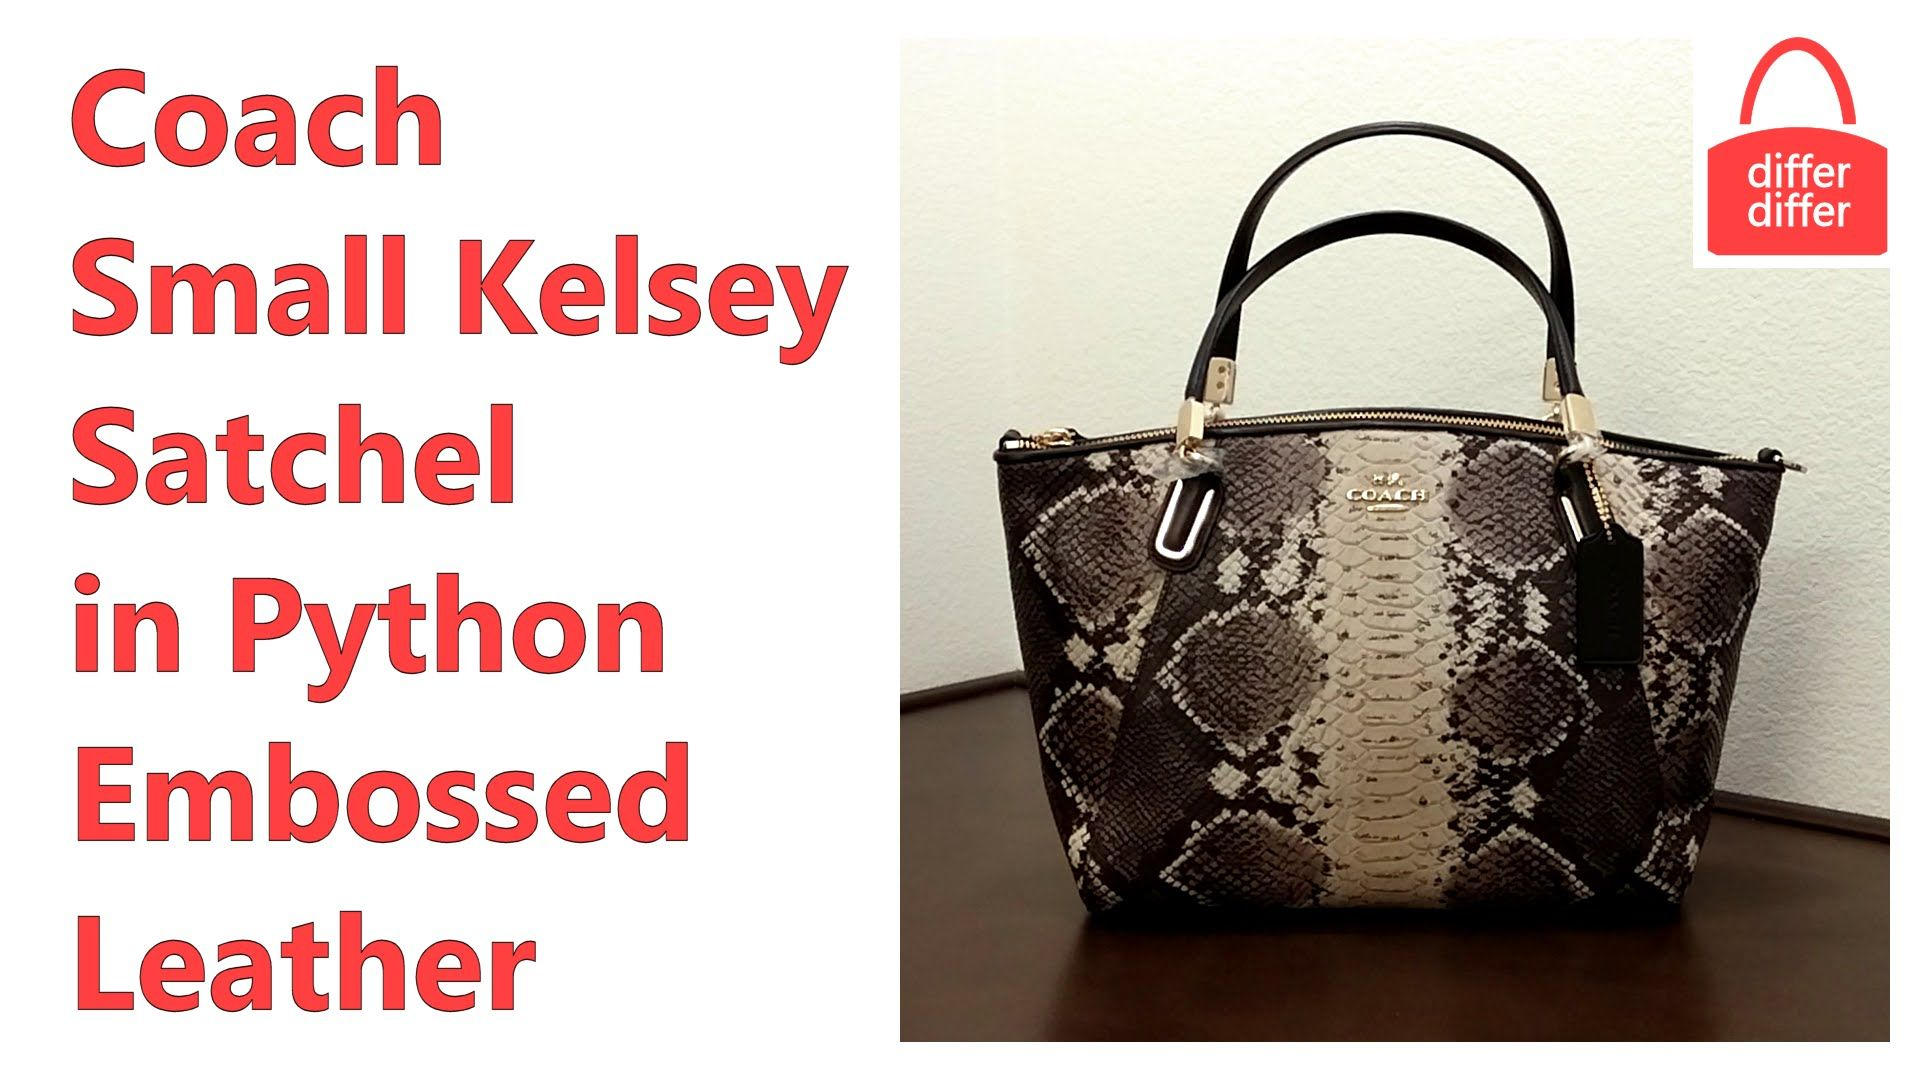 b78513469dd8 Coach Small Kelsey Satchel in Python Embossed Leather 36382 ...